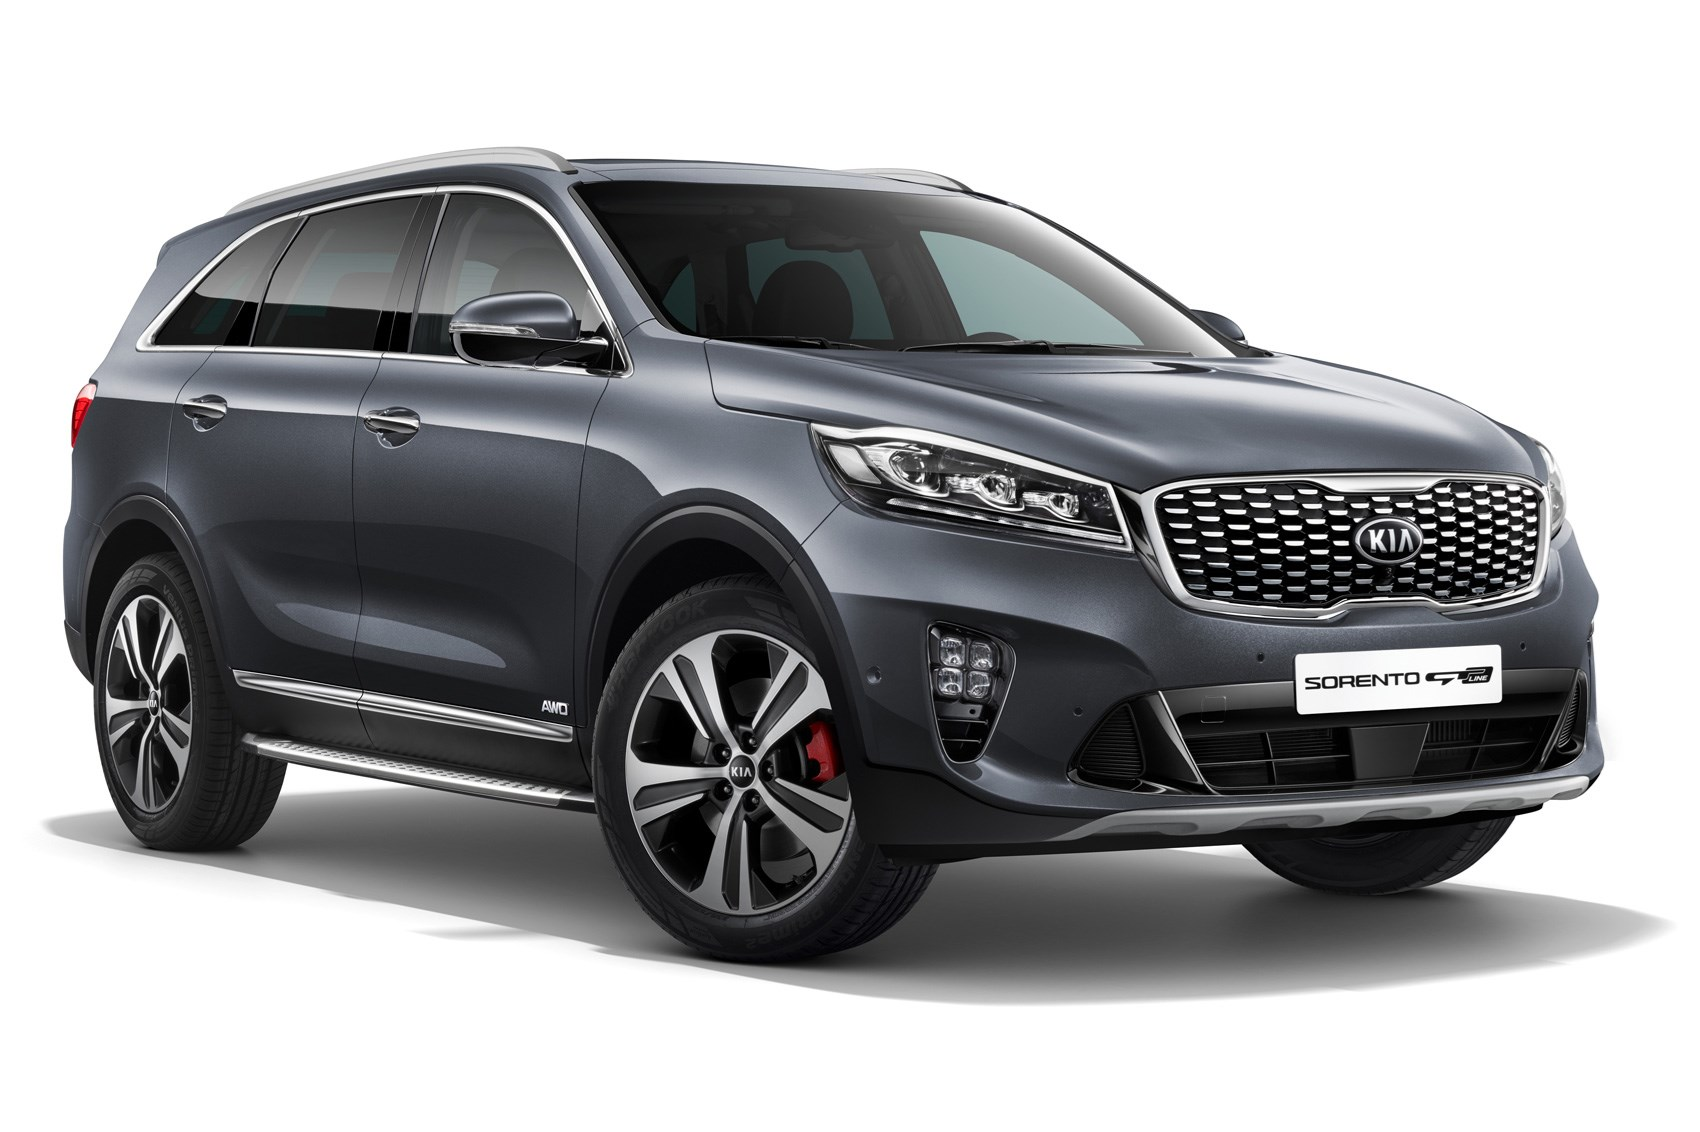 Sorento gets sporty topspec GTLine among 2017 Kia SUV updates